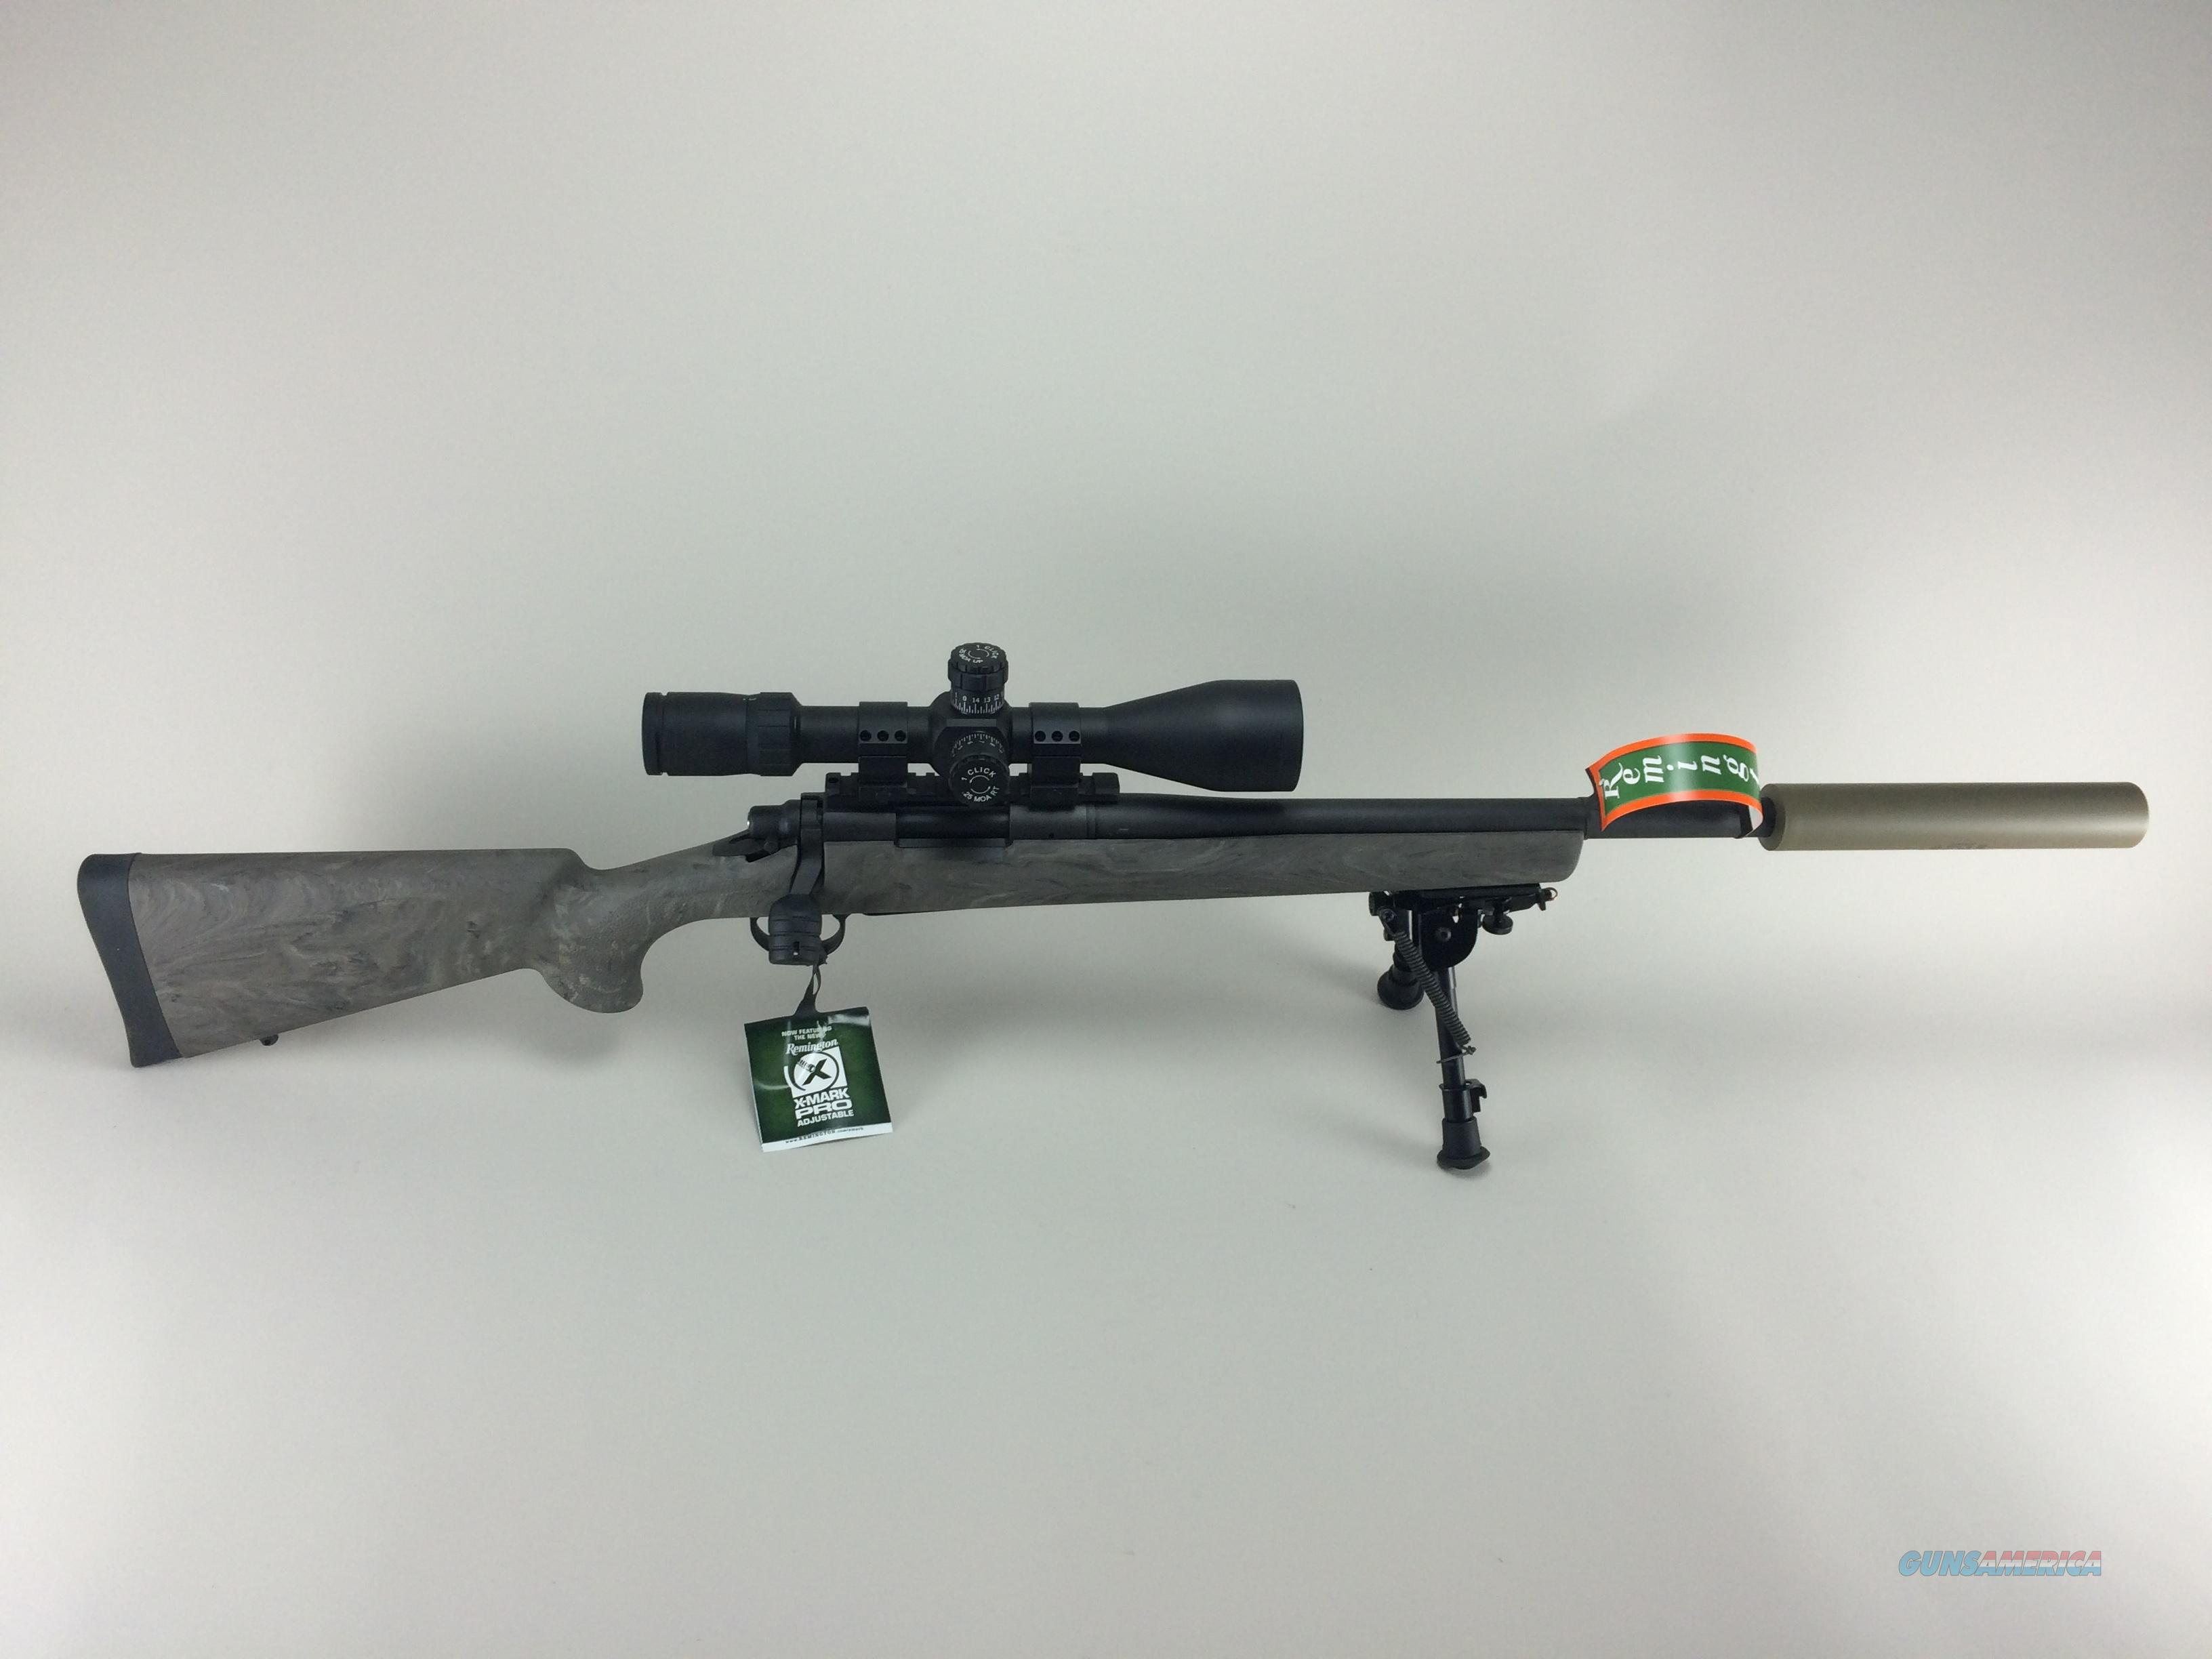 Remington 700 SPS .300AAC Blackout 84205 Tactical/Target/Varmint with Weaver 3-15x50mm Tactical, First Focal Plane Scope and much more....   Guns > Rifles > Remington Rifles - Modern > Model 700 > Tactical